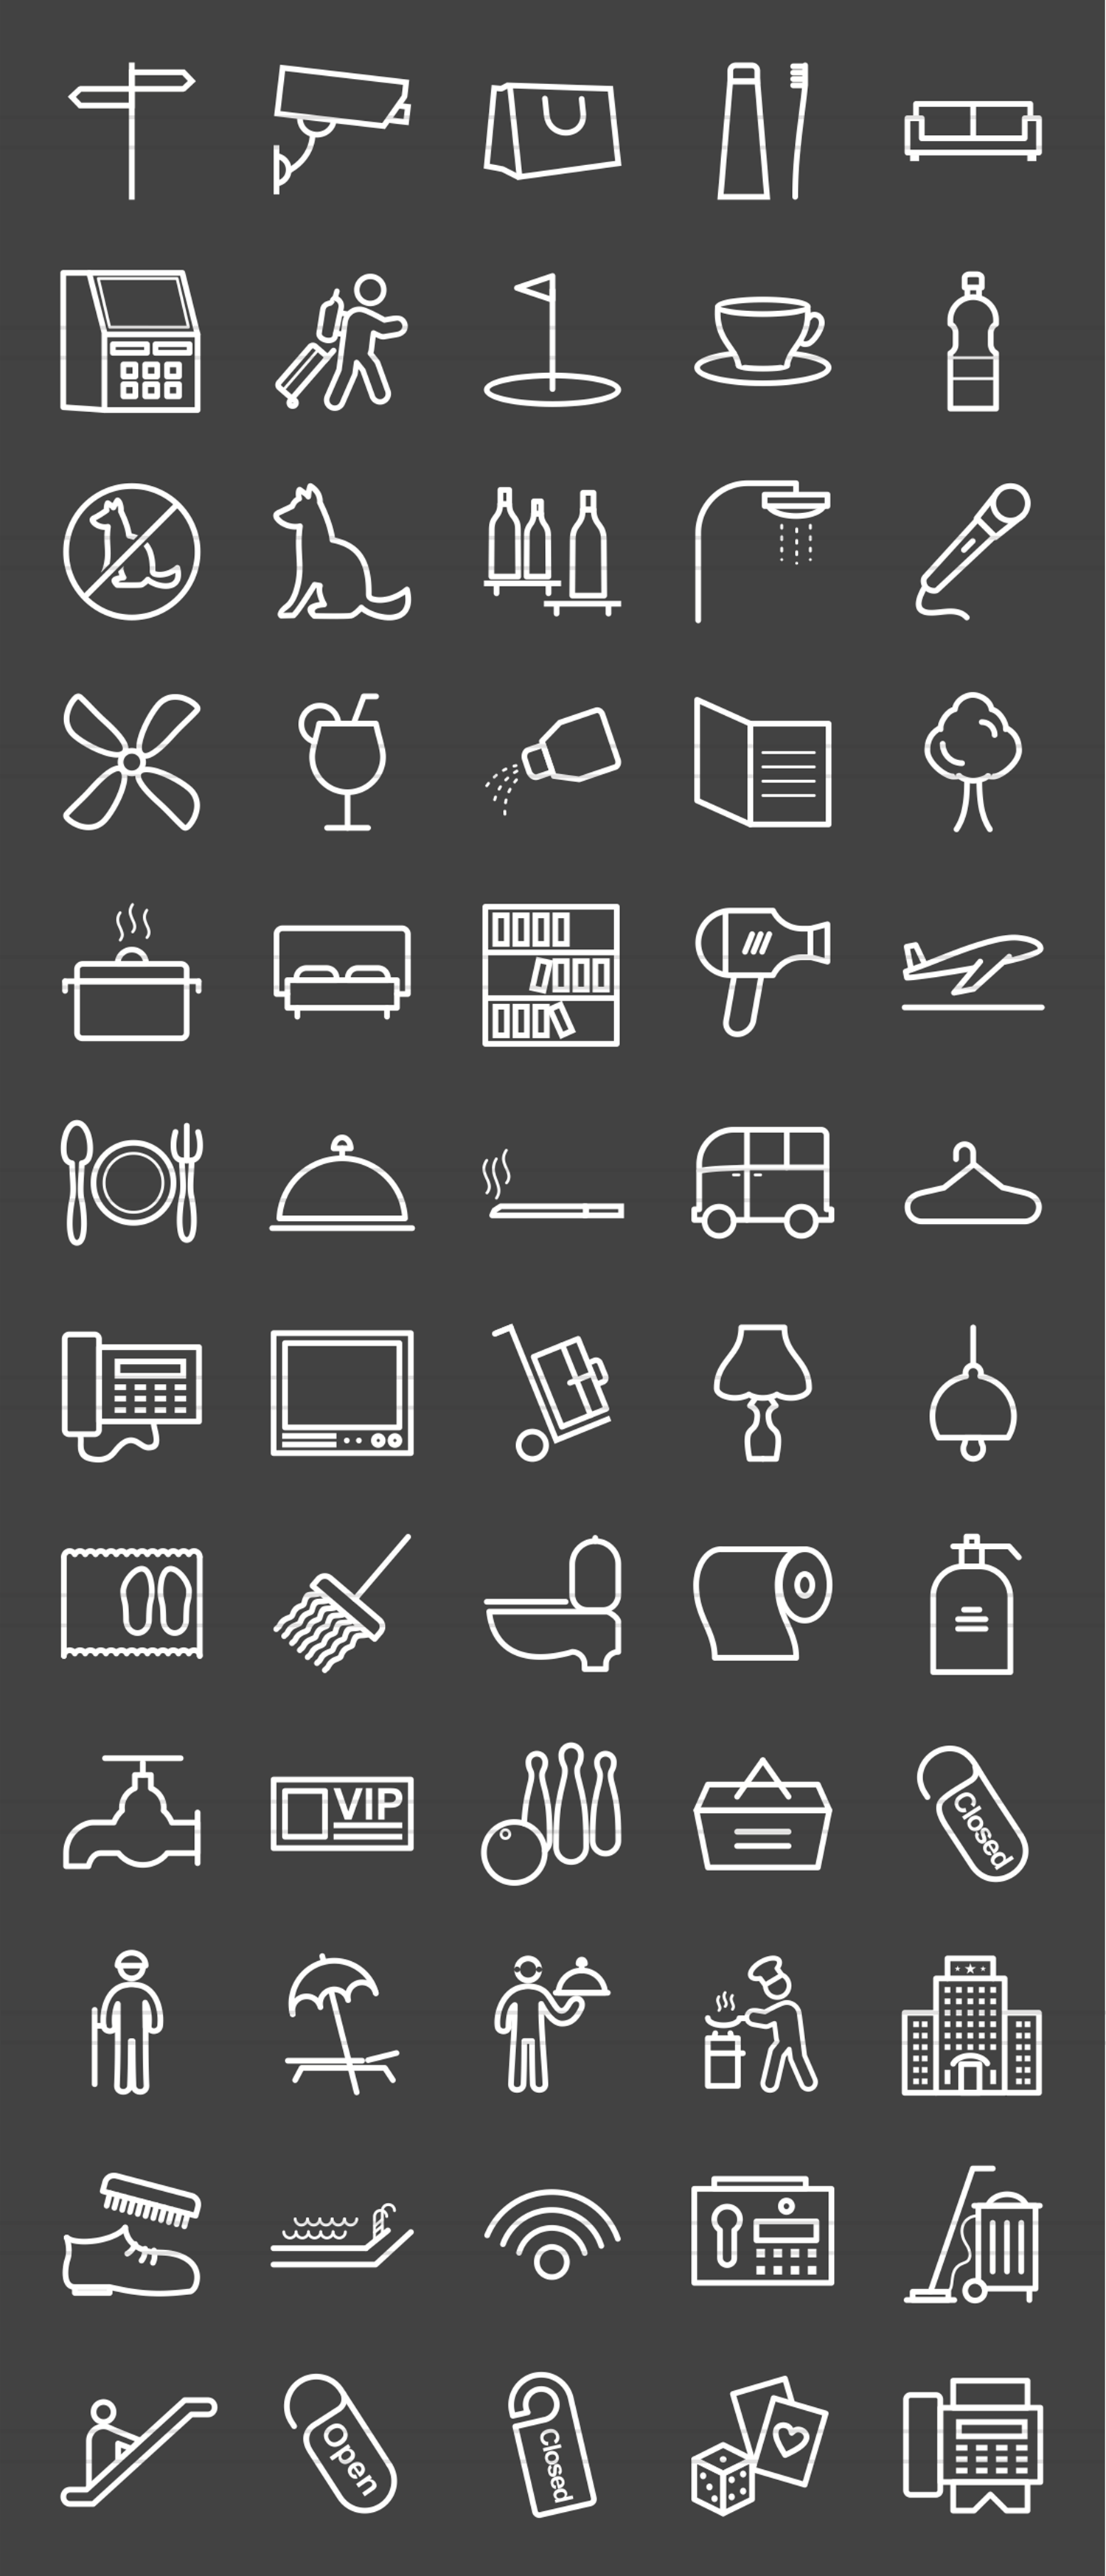 60 Hotel & Restaurant Line Inverted Icons example image 2